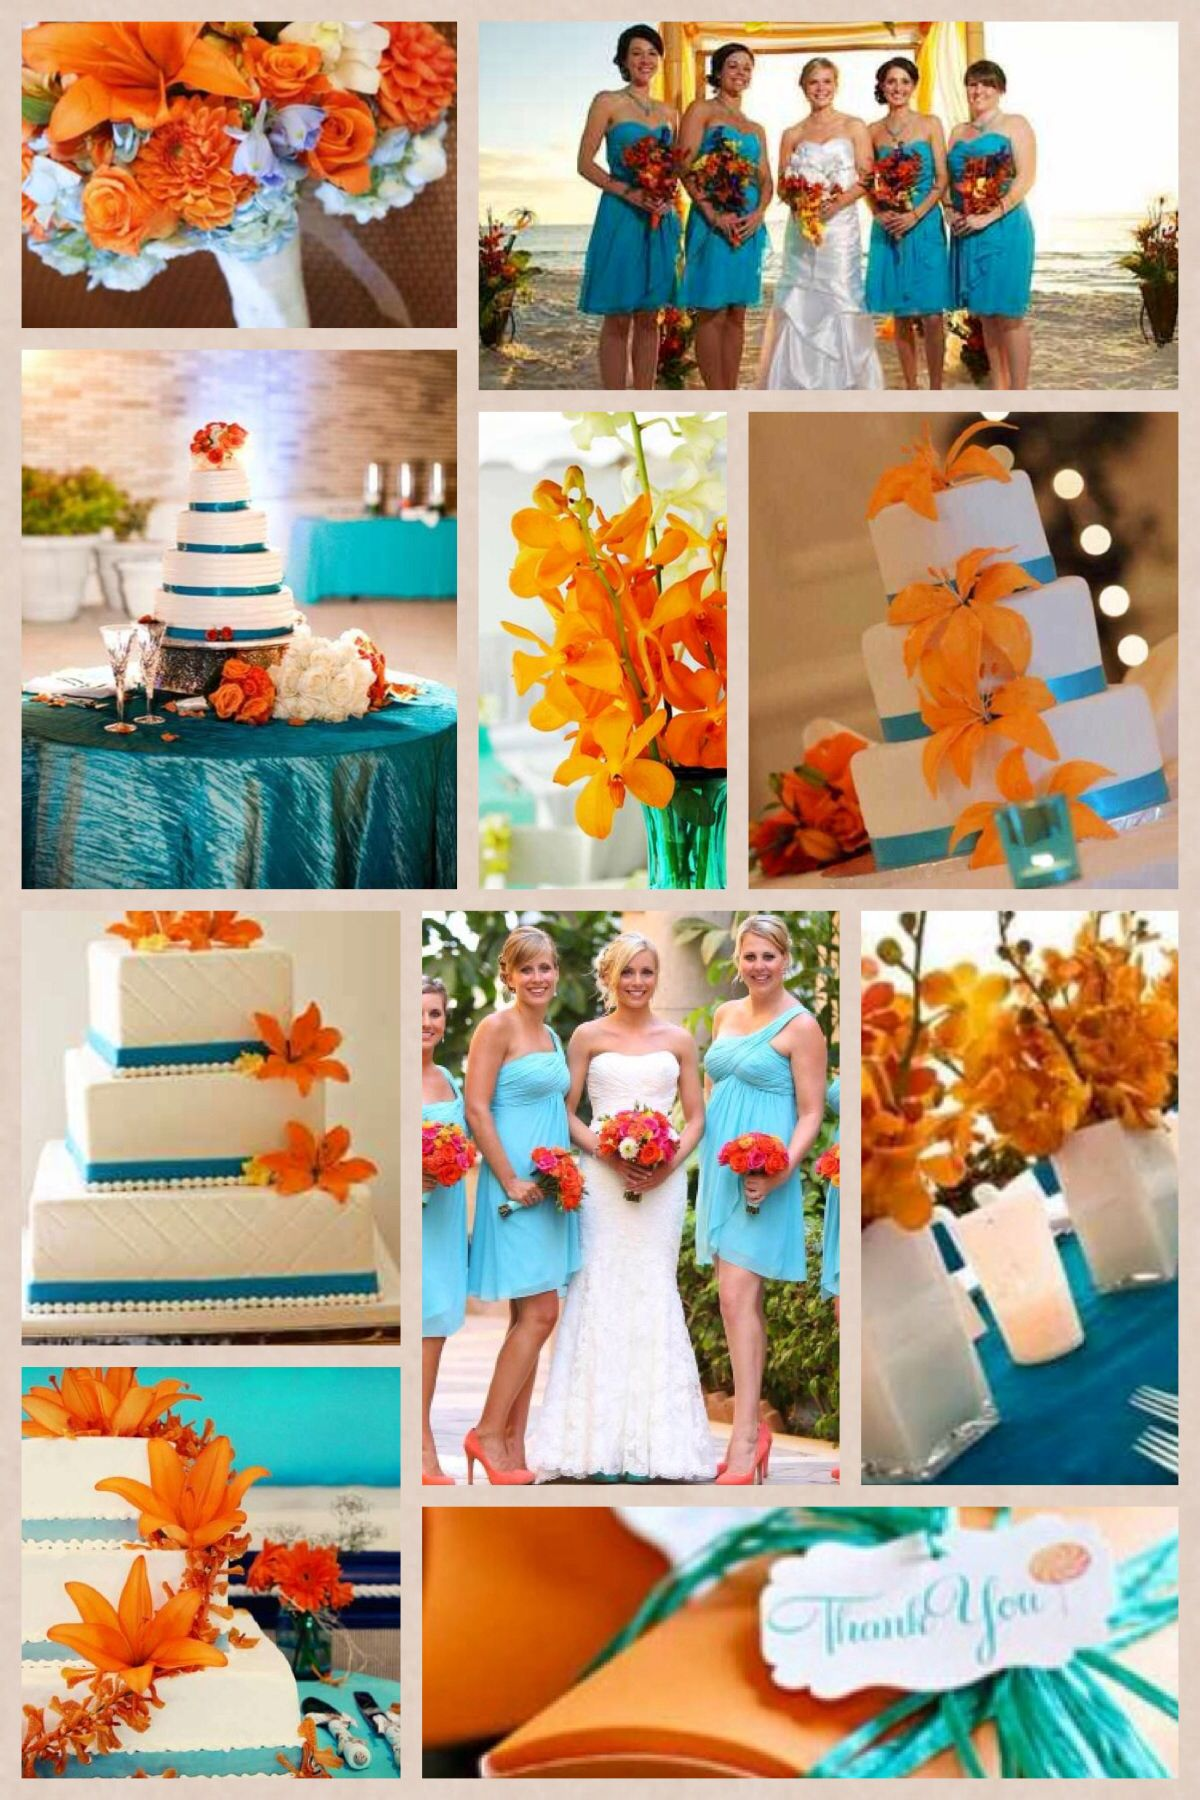 wedding ideas orange turquoise and orange themed wedding collage wedding 28275